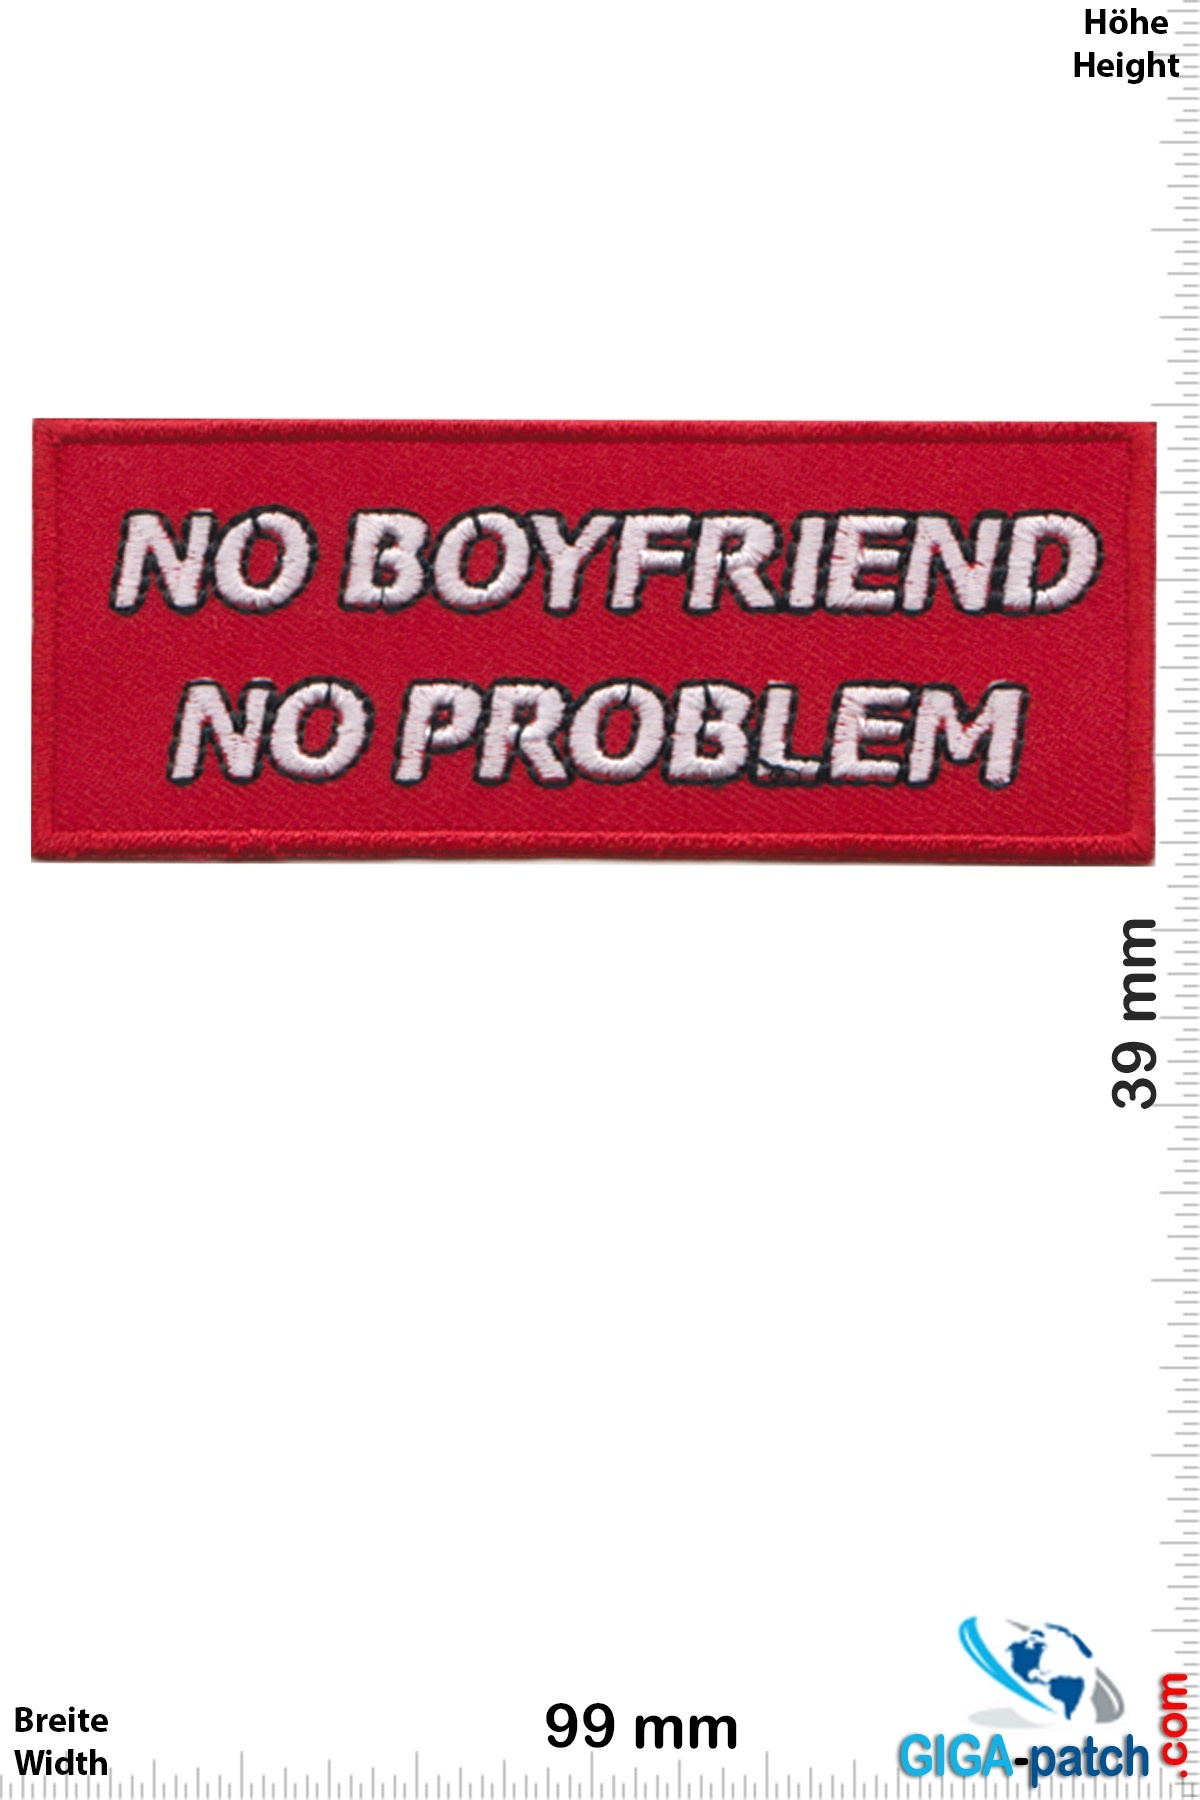 Sprüche, Claims No Boyfriend - No Problem